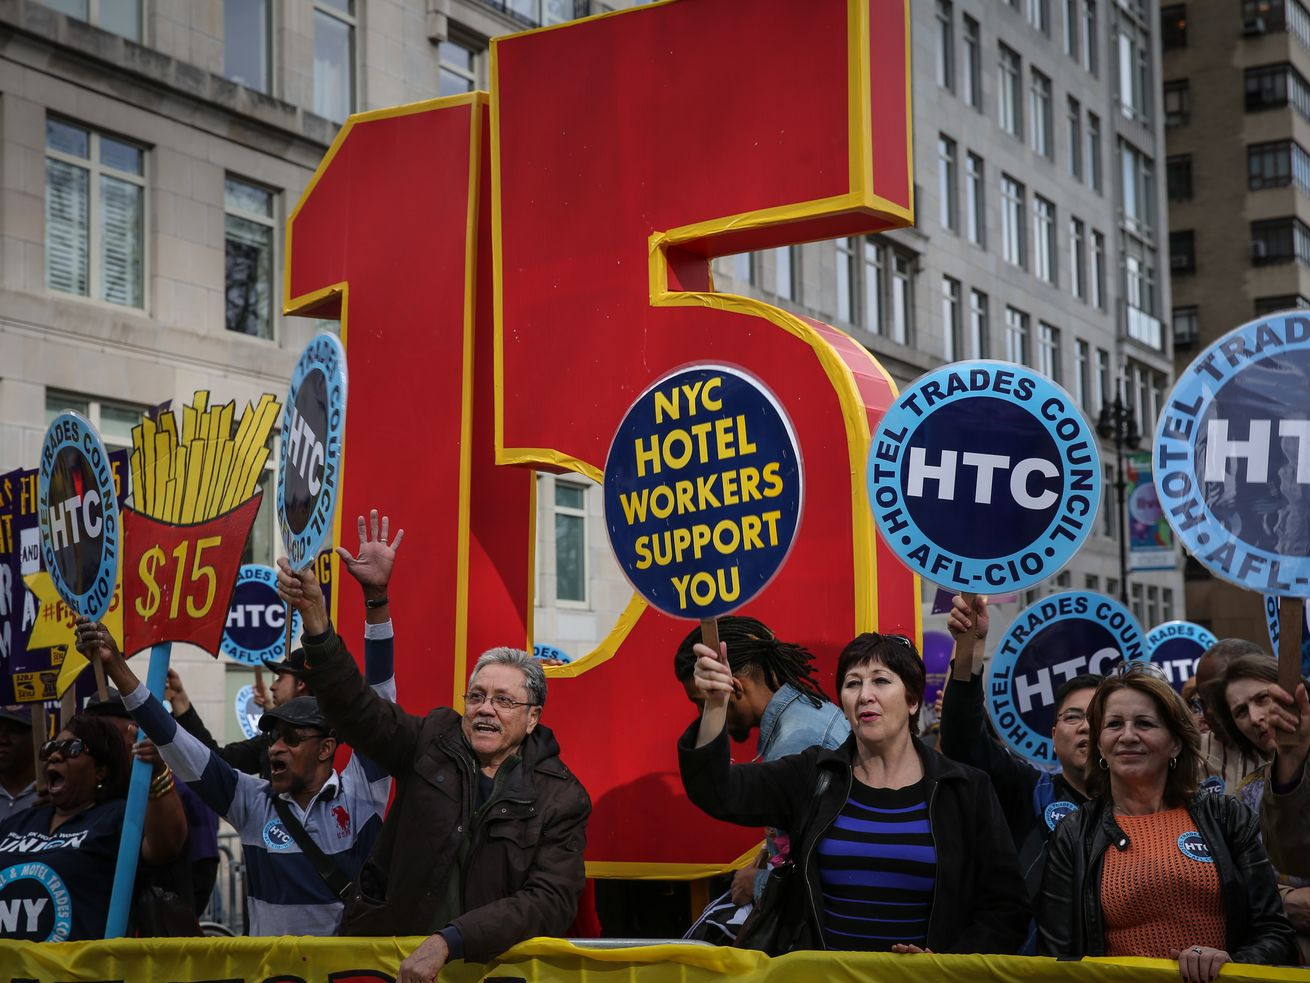 Workers rally for a $15 minimum wage at Colombus Square in New York City on April 15, 2015.